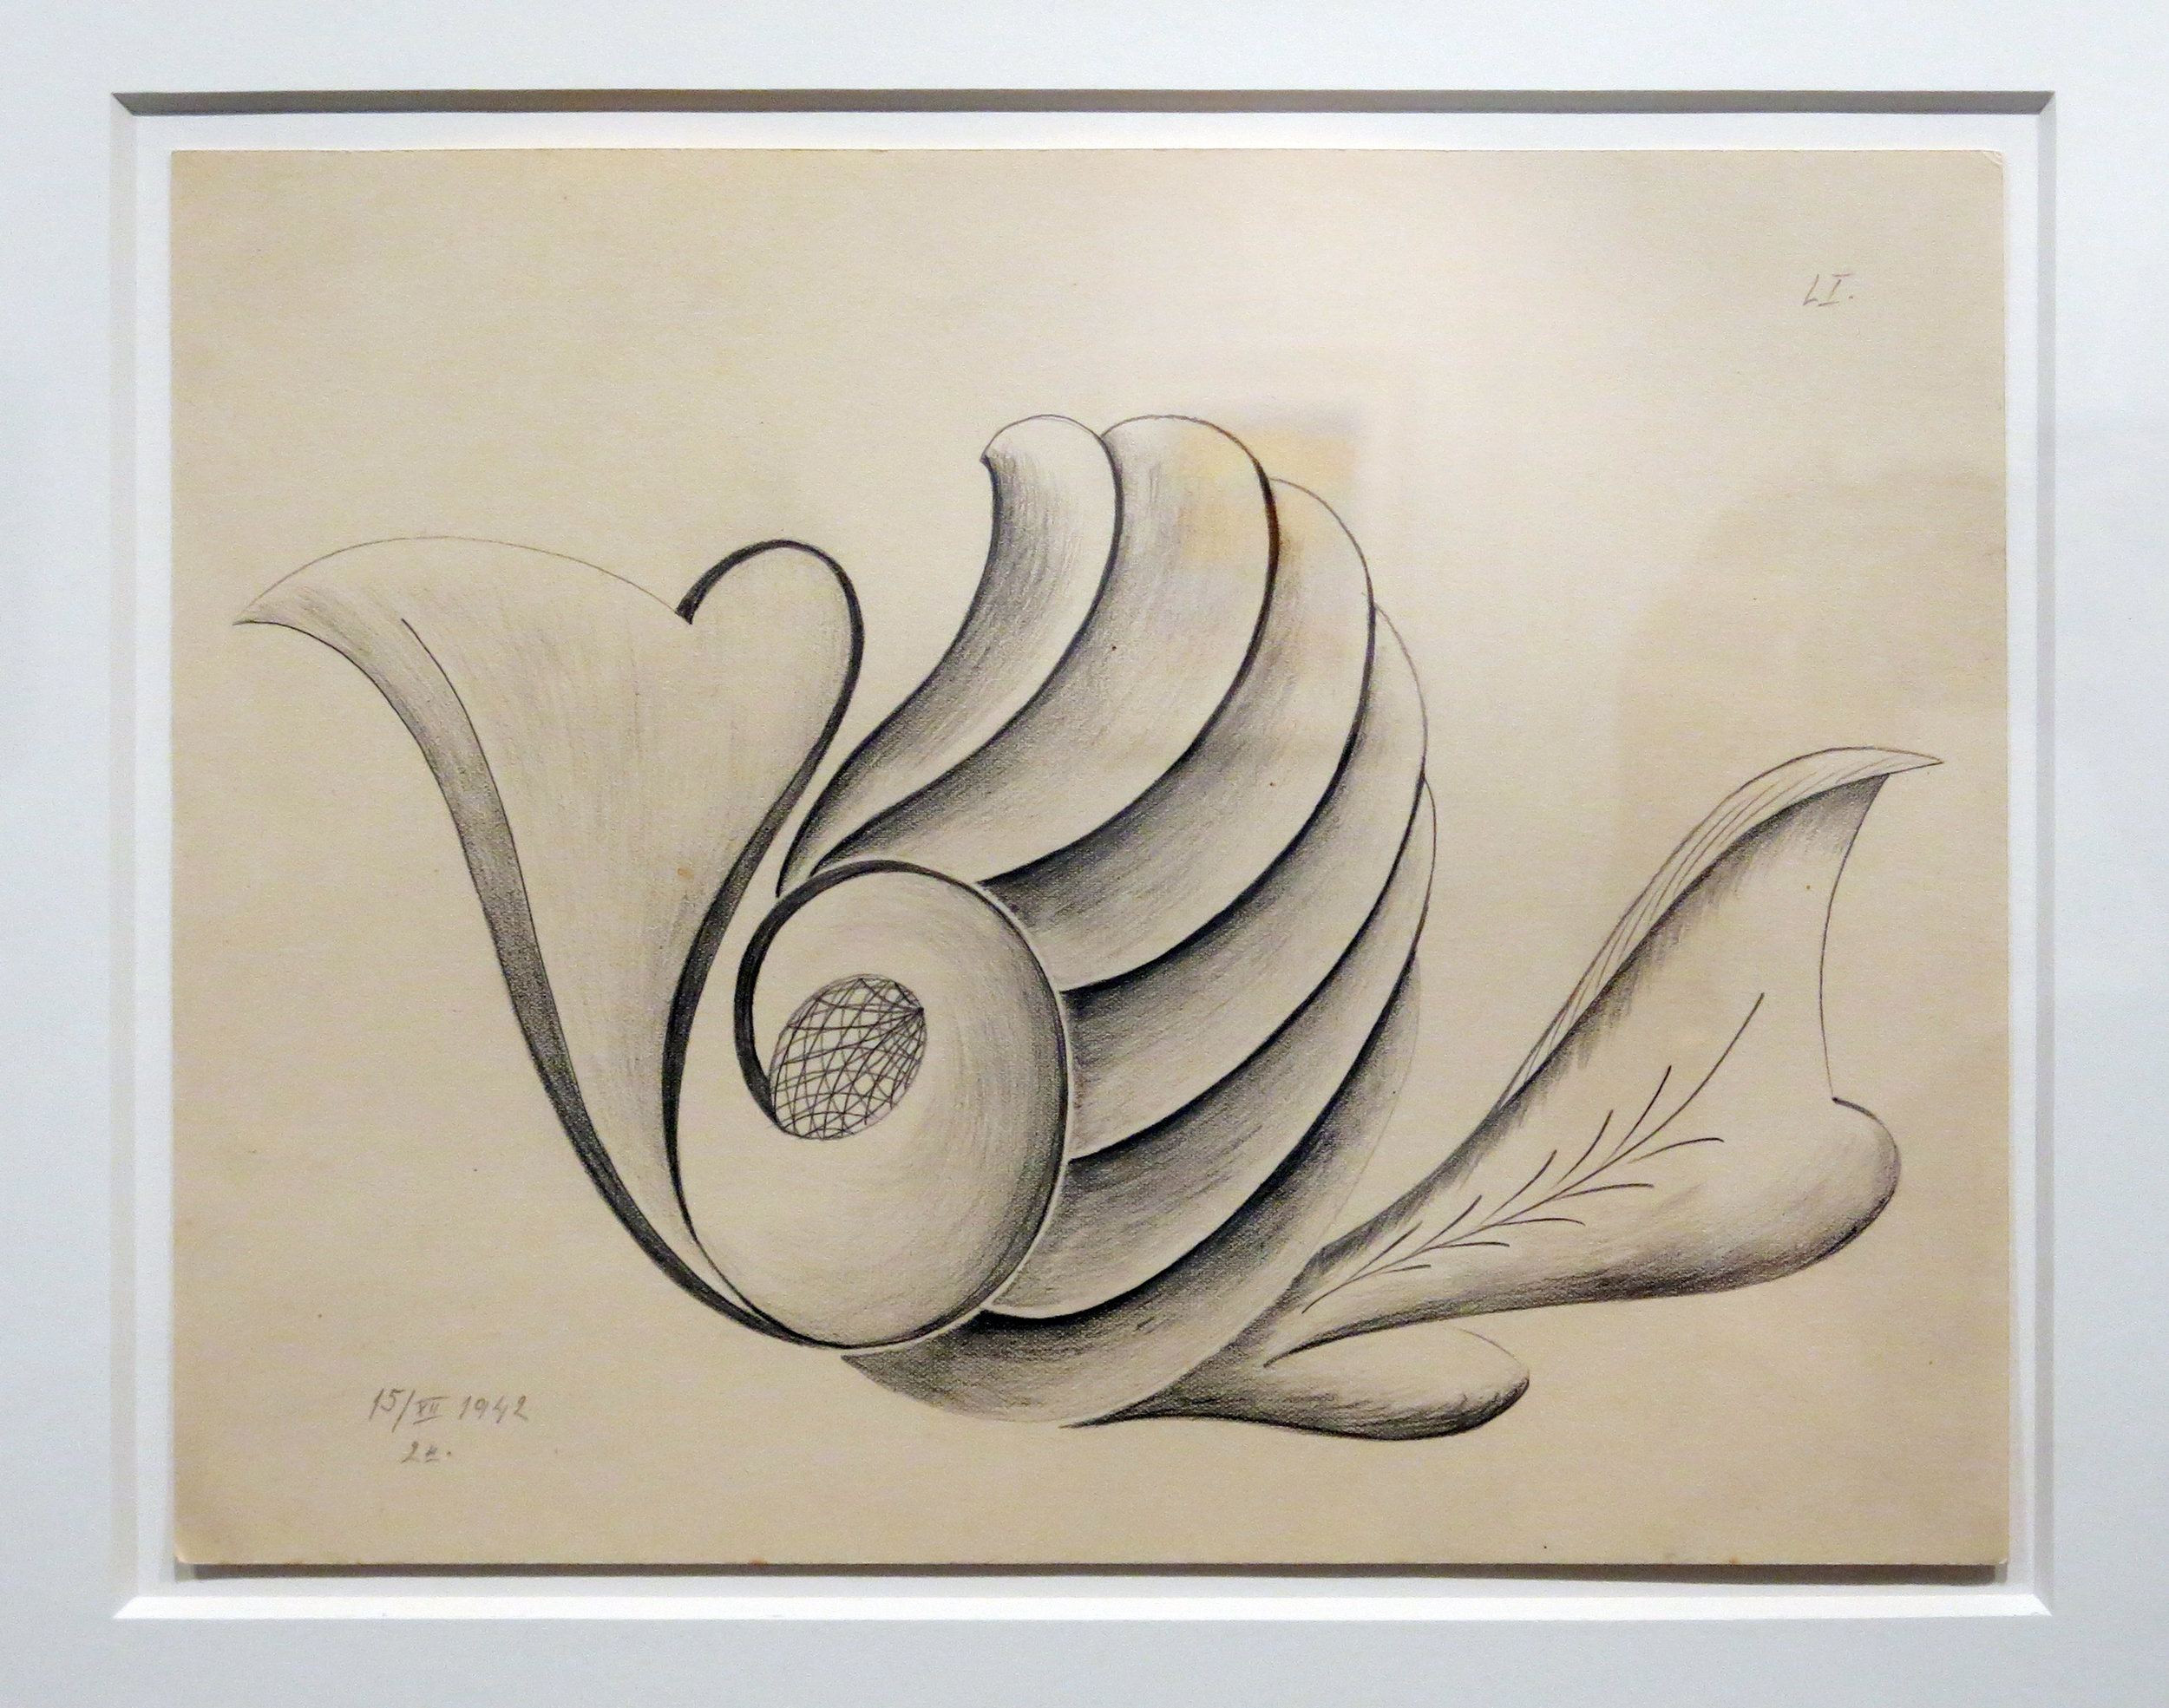 Czech Republic, Untitled (Anonymous [LI] Mediumistic Drawing), 1942, Graphite on paper, 8.75h x 11.75 in.